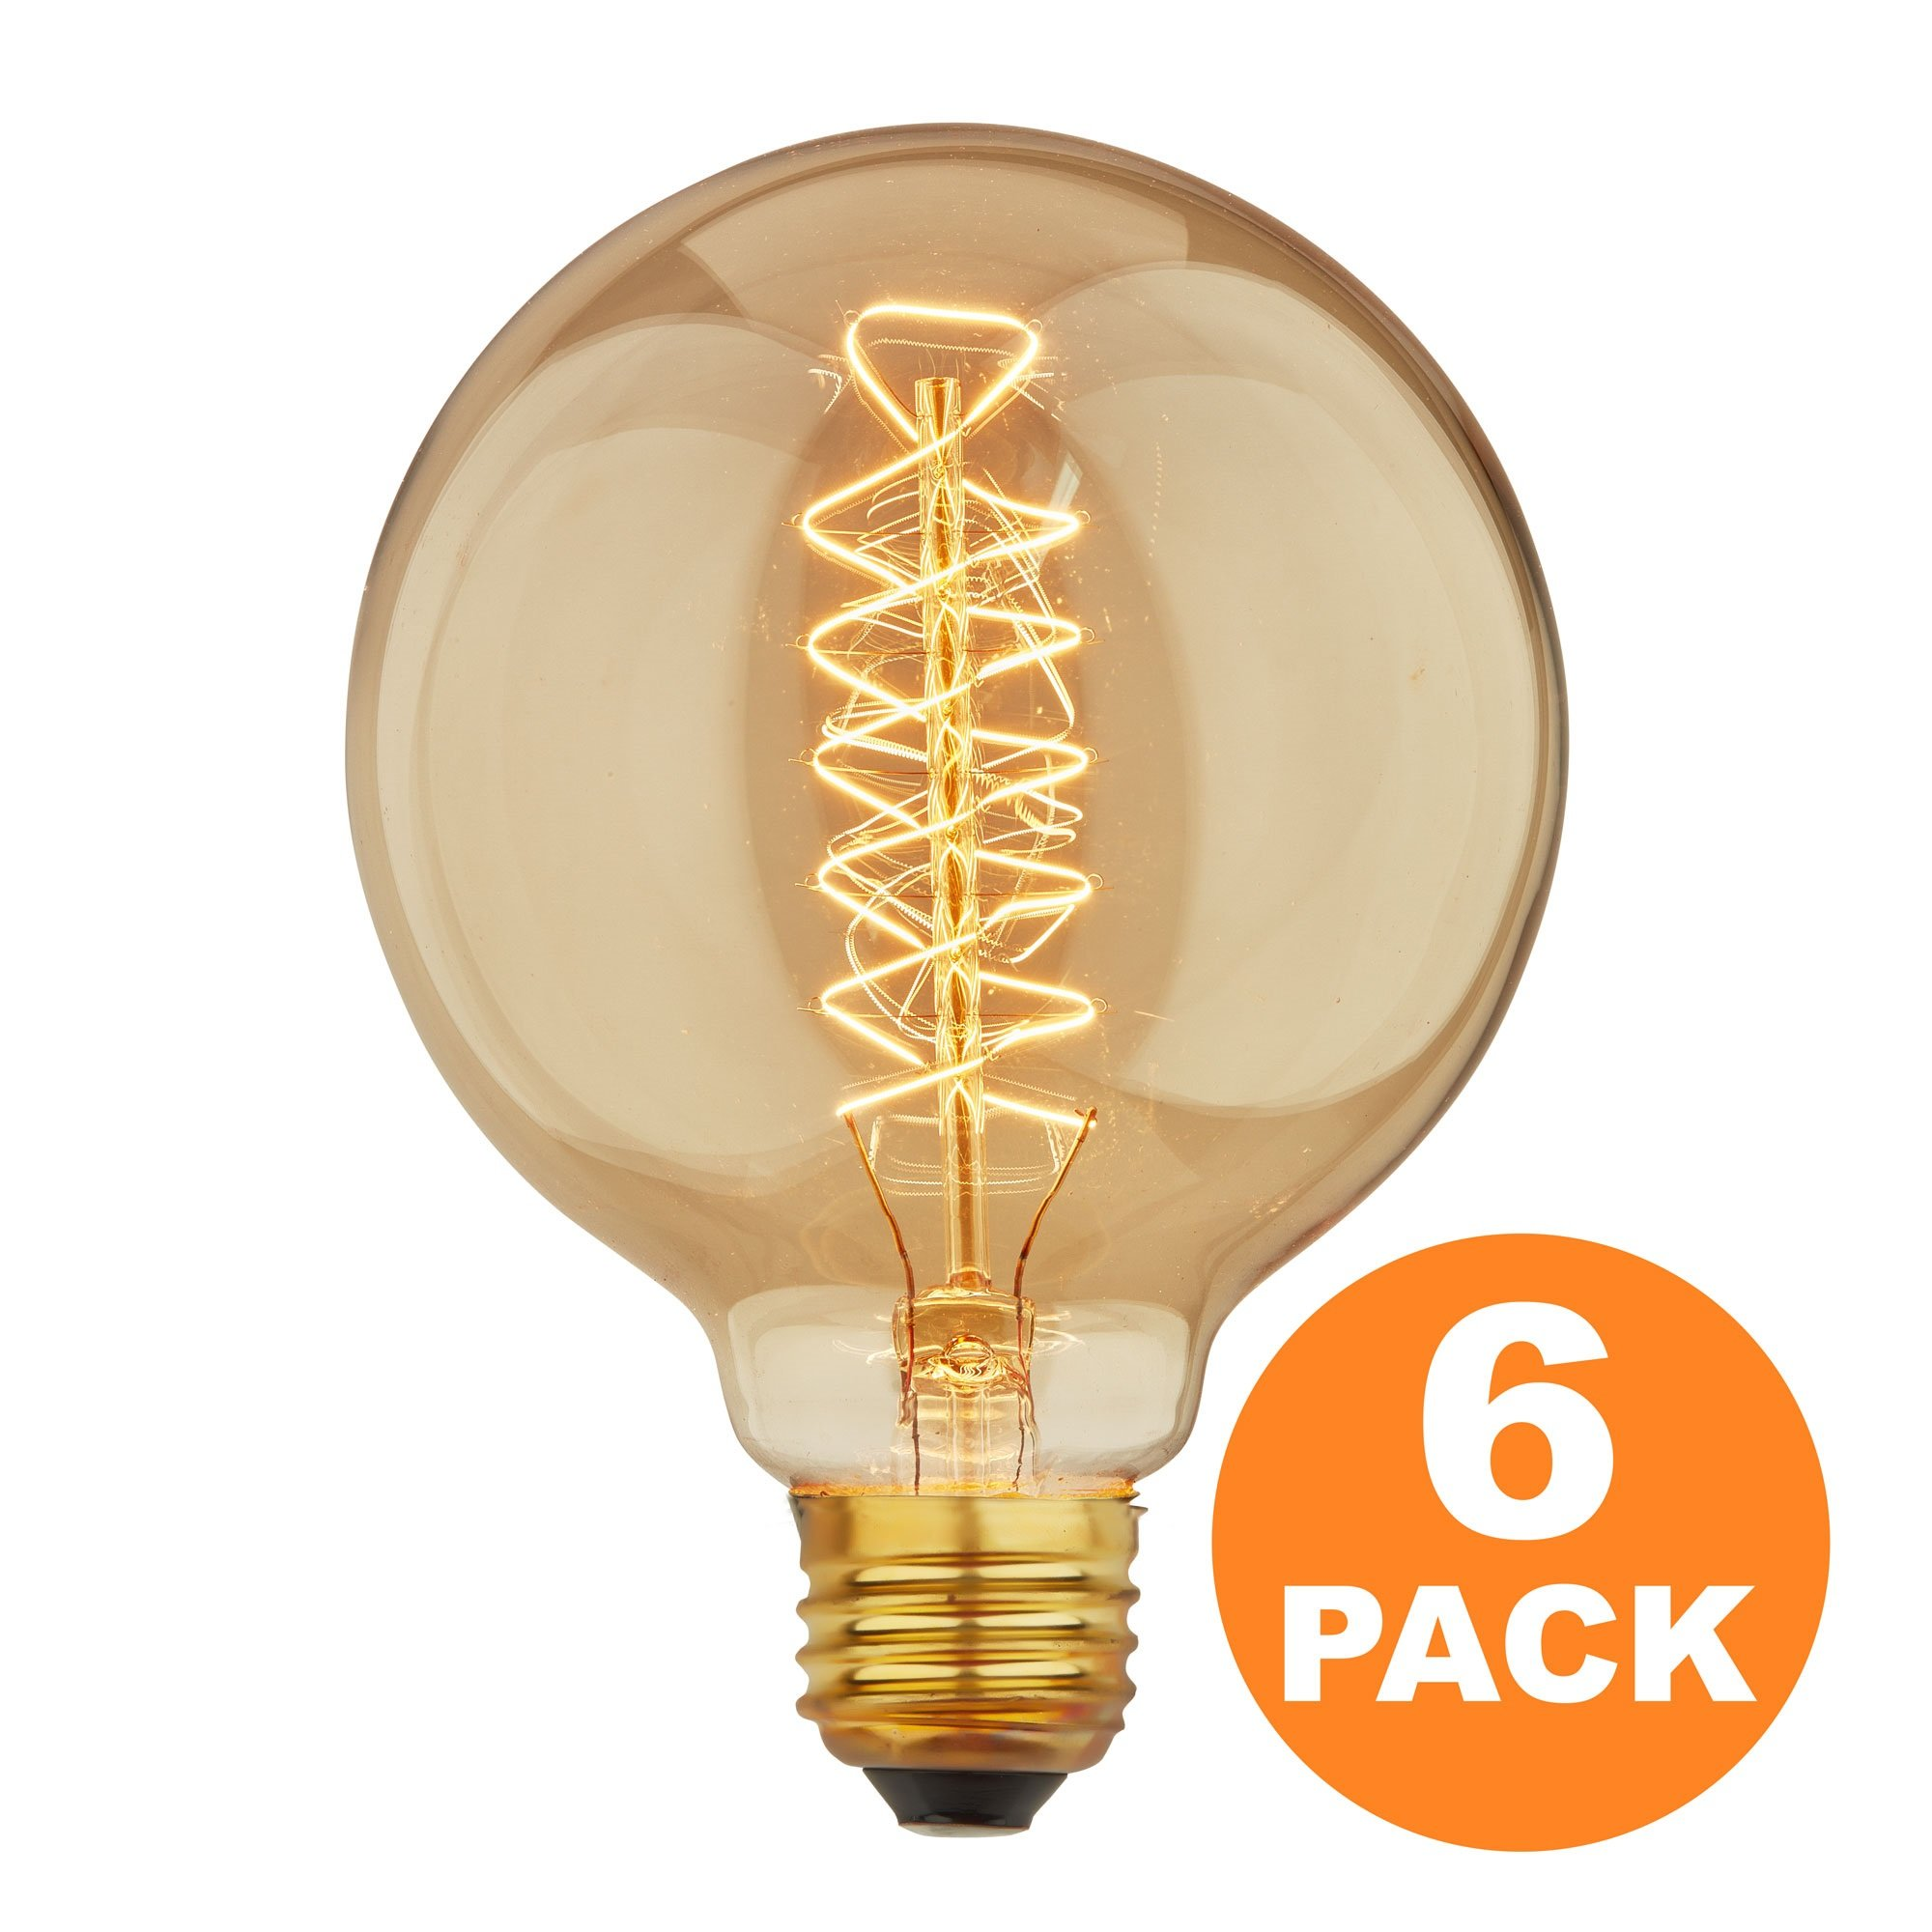 Vintage Edison Bulbs with Spiral Filament, 60W Dimmable E26/E27 G95 Round Globe Large Antique Light, Golden Finish Industrial Design Amber Warm 120V [6 Pack]